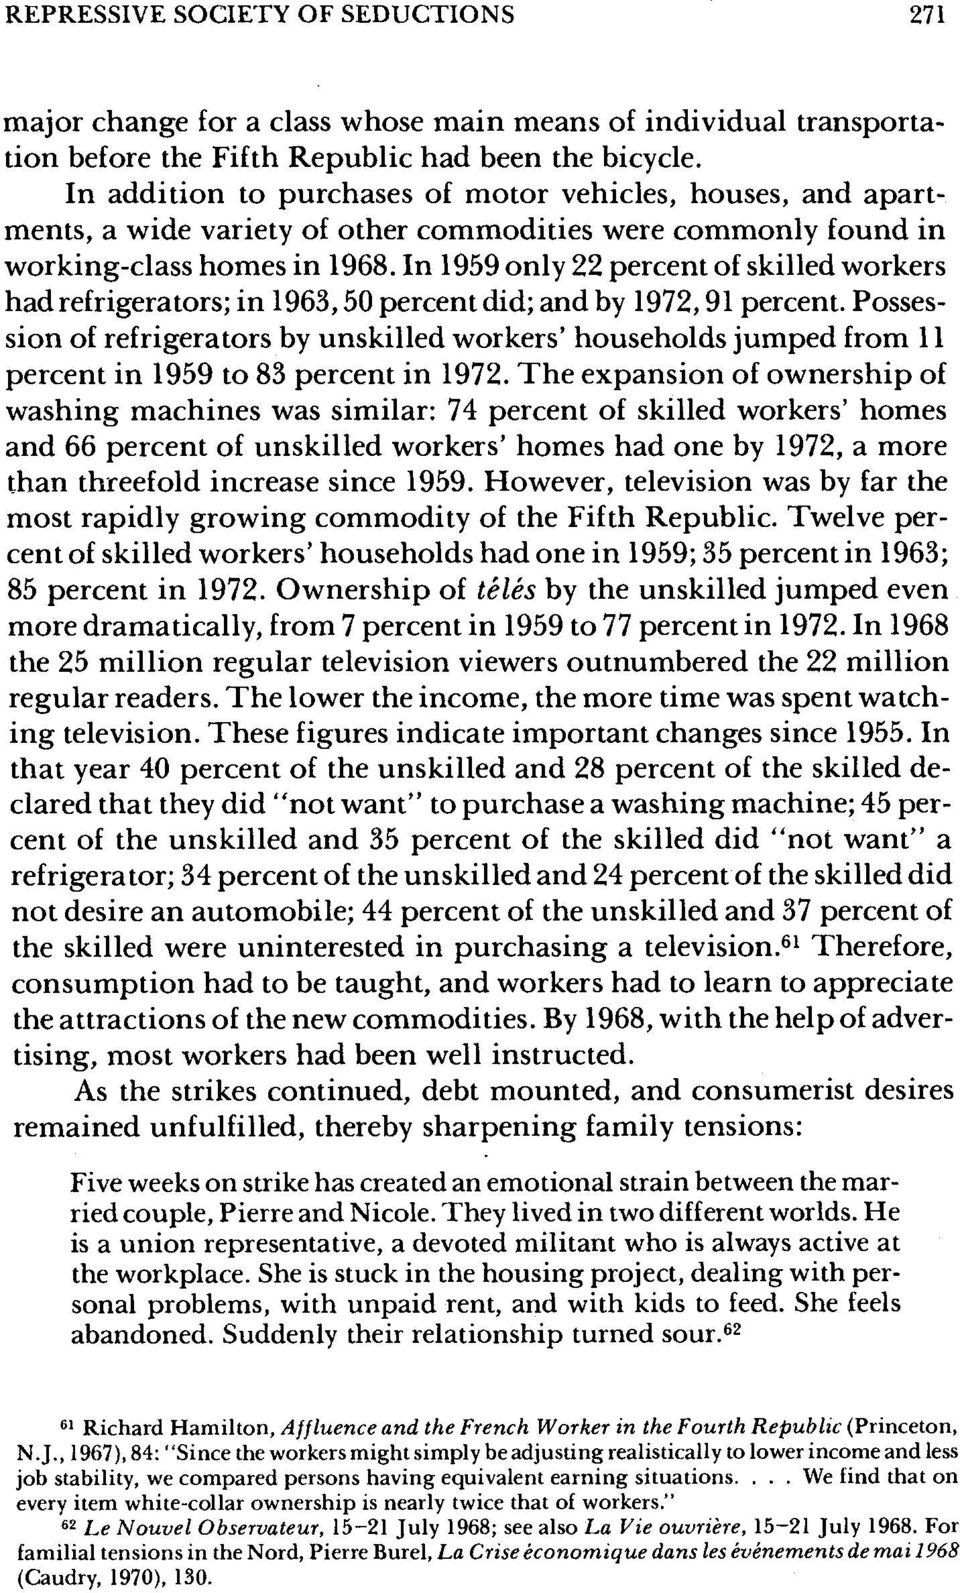 In 1959 only 22 percent of skilled workers had refrigerators; in 1963,50 percent did; and by 1972,91 percent.